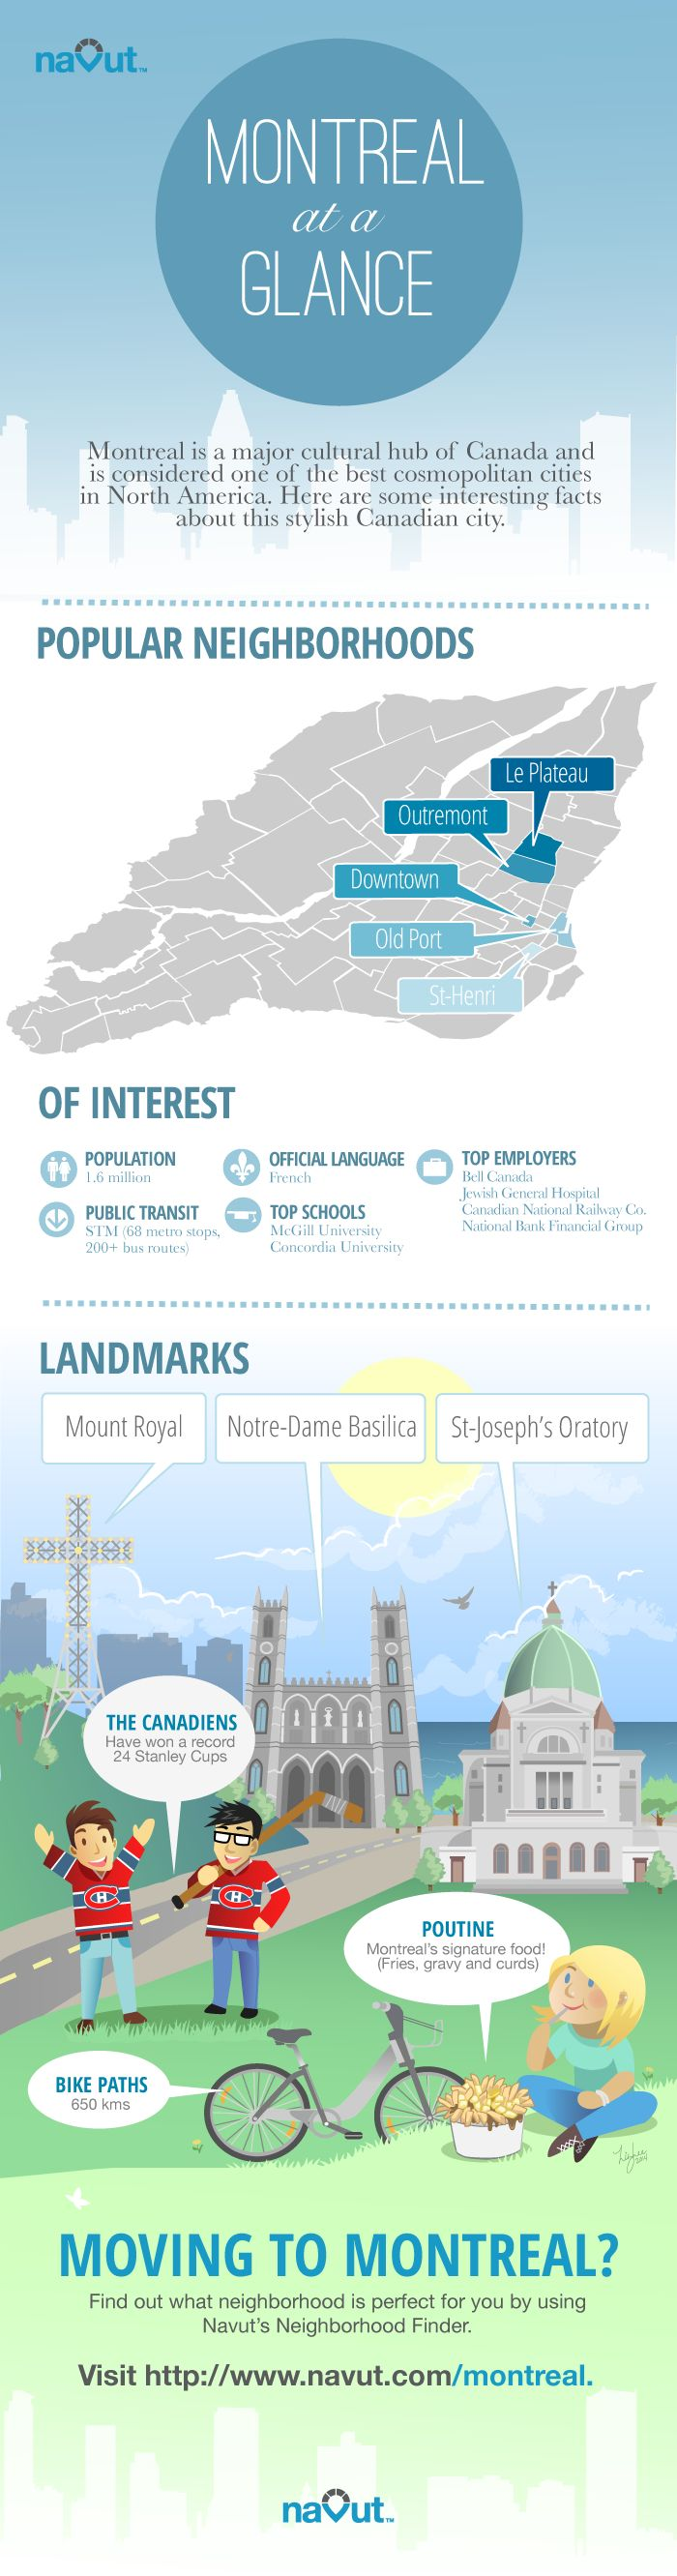 Montreal at a glance: an infographic overview of a cosmopolitan city | Navut Blog